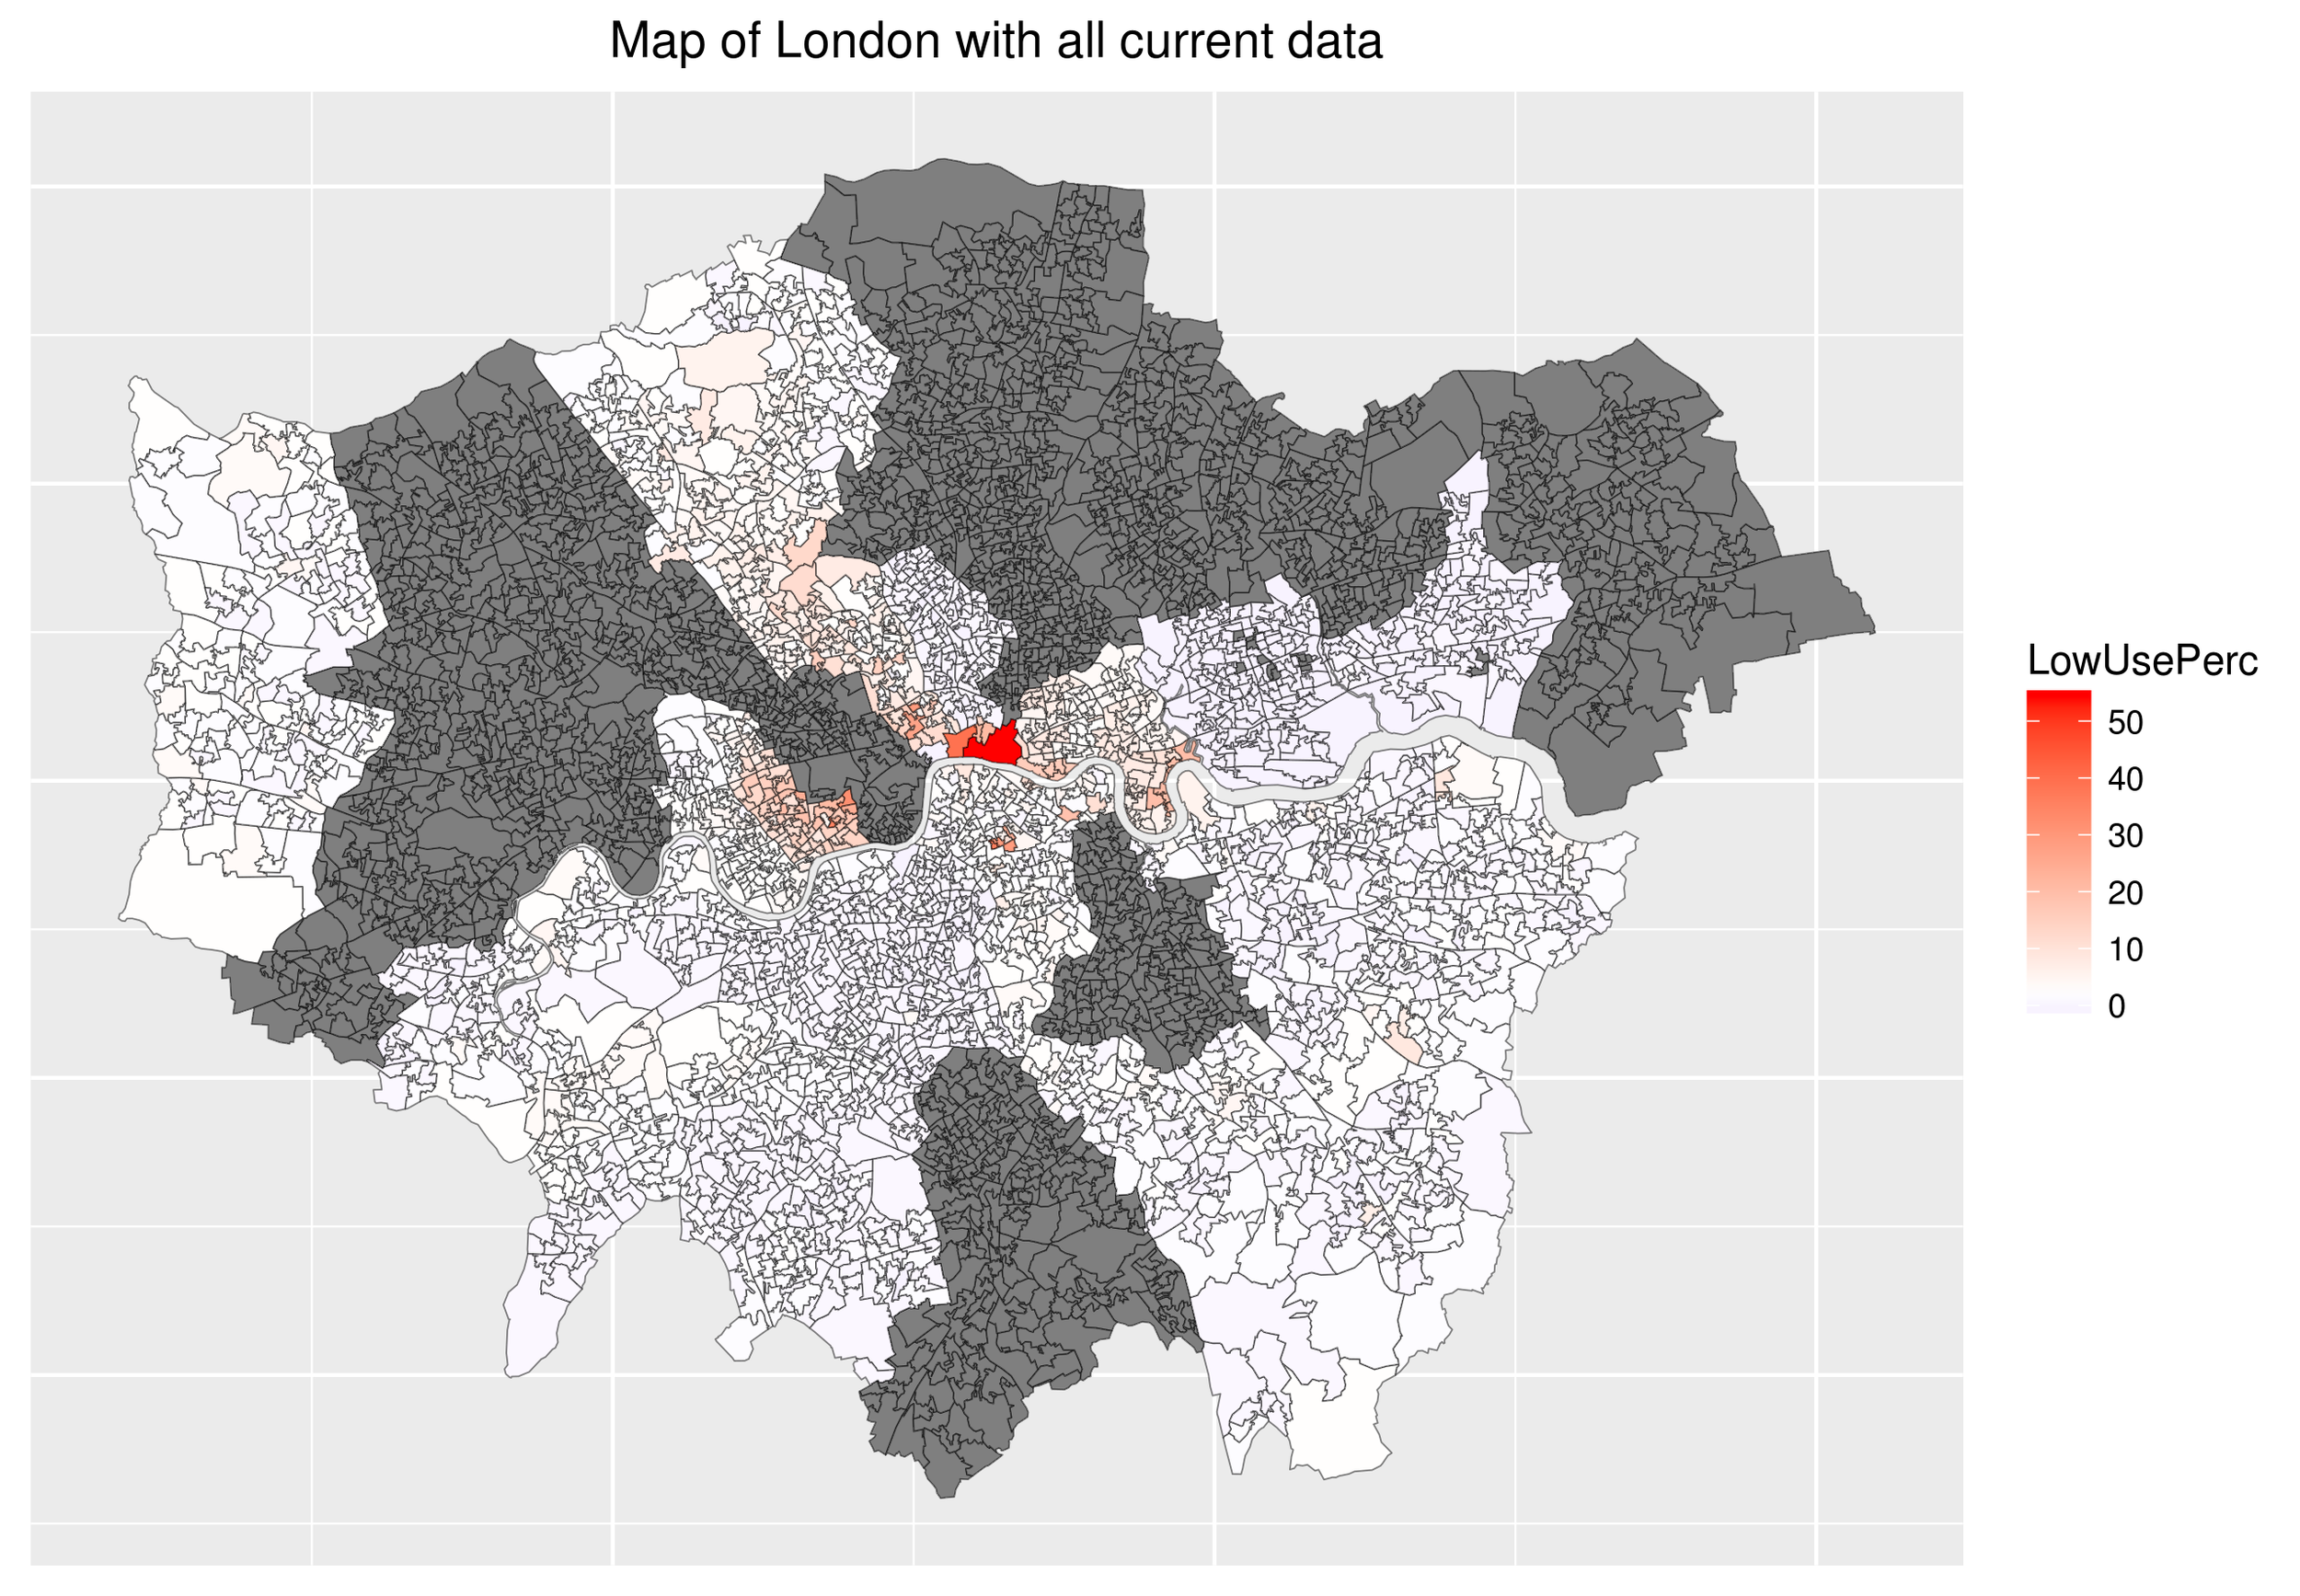 The areas of central London just north of the river have the most low-use  property, with the City of London and Chelsea being particularly obvious. Dark grey areas are for boroughs for which data has not been received.